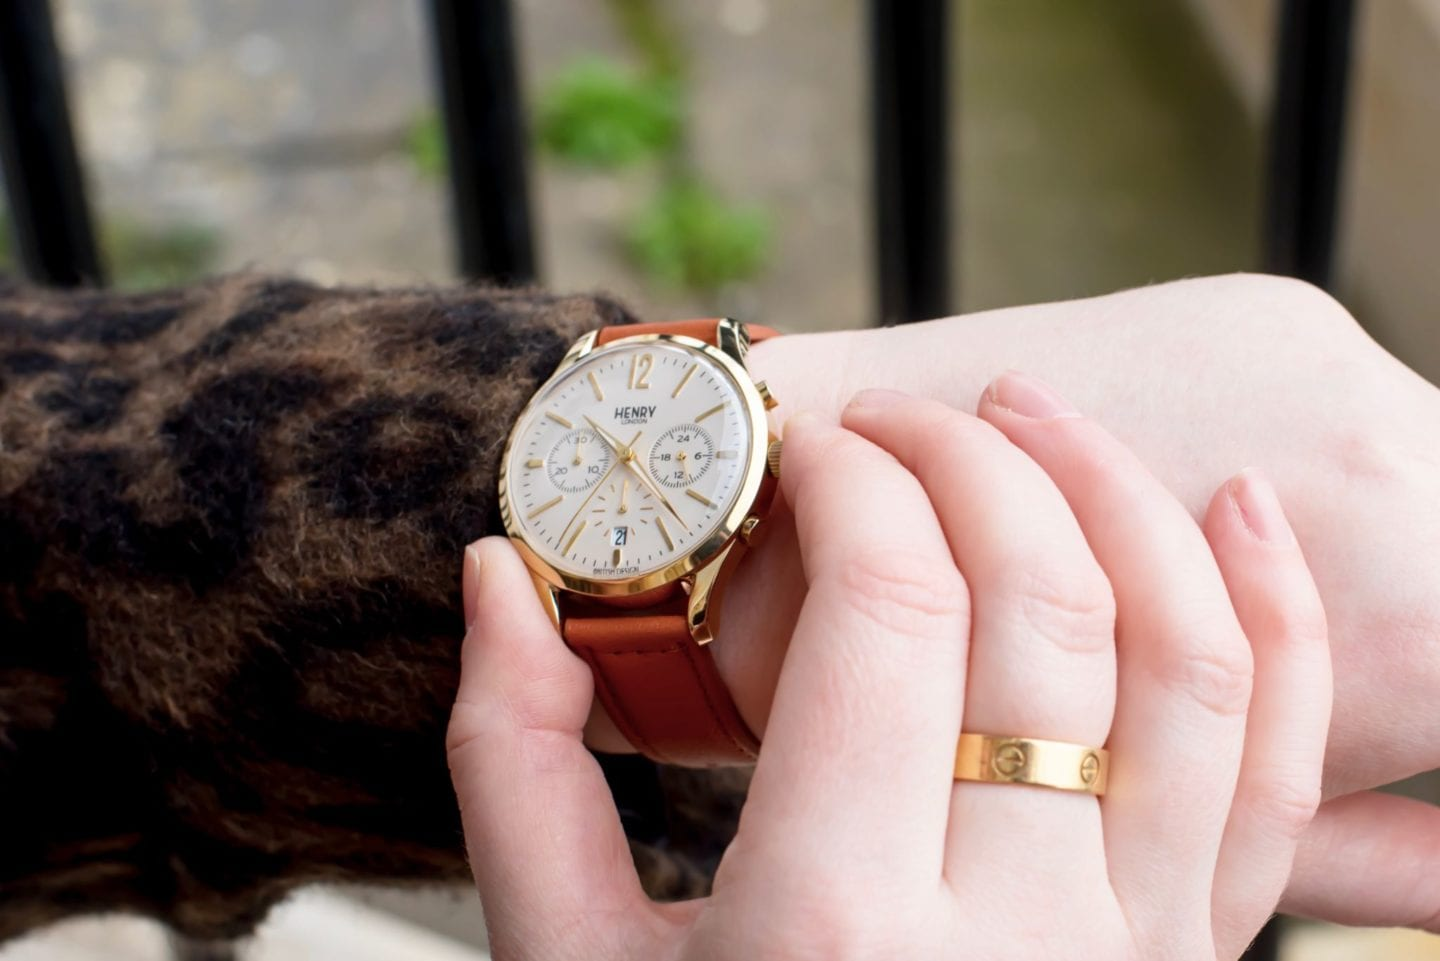 Henry Watch london brown leather